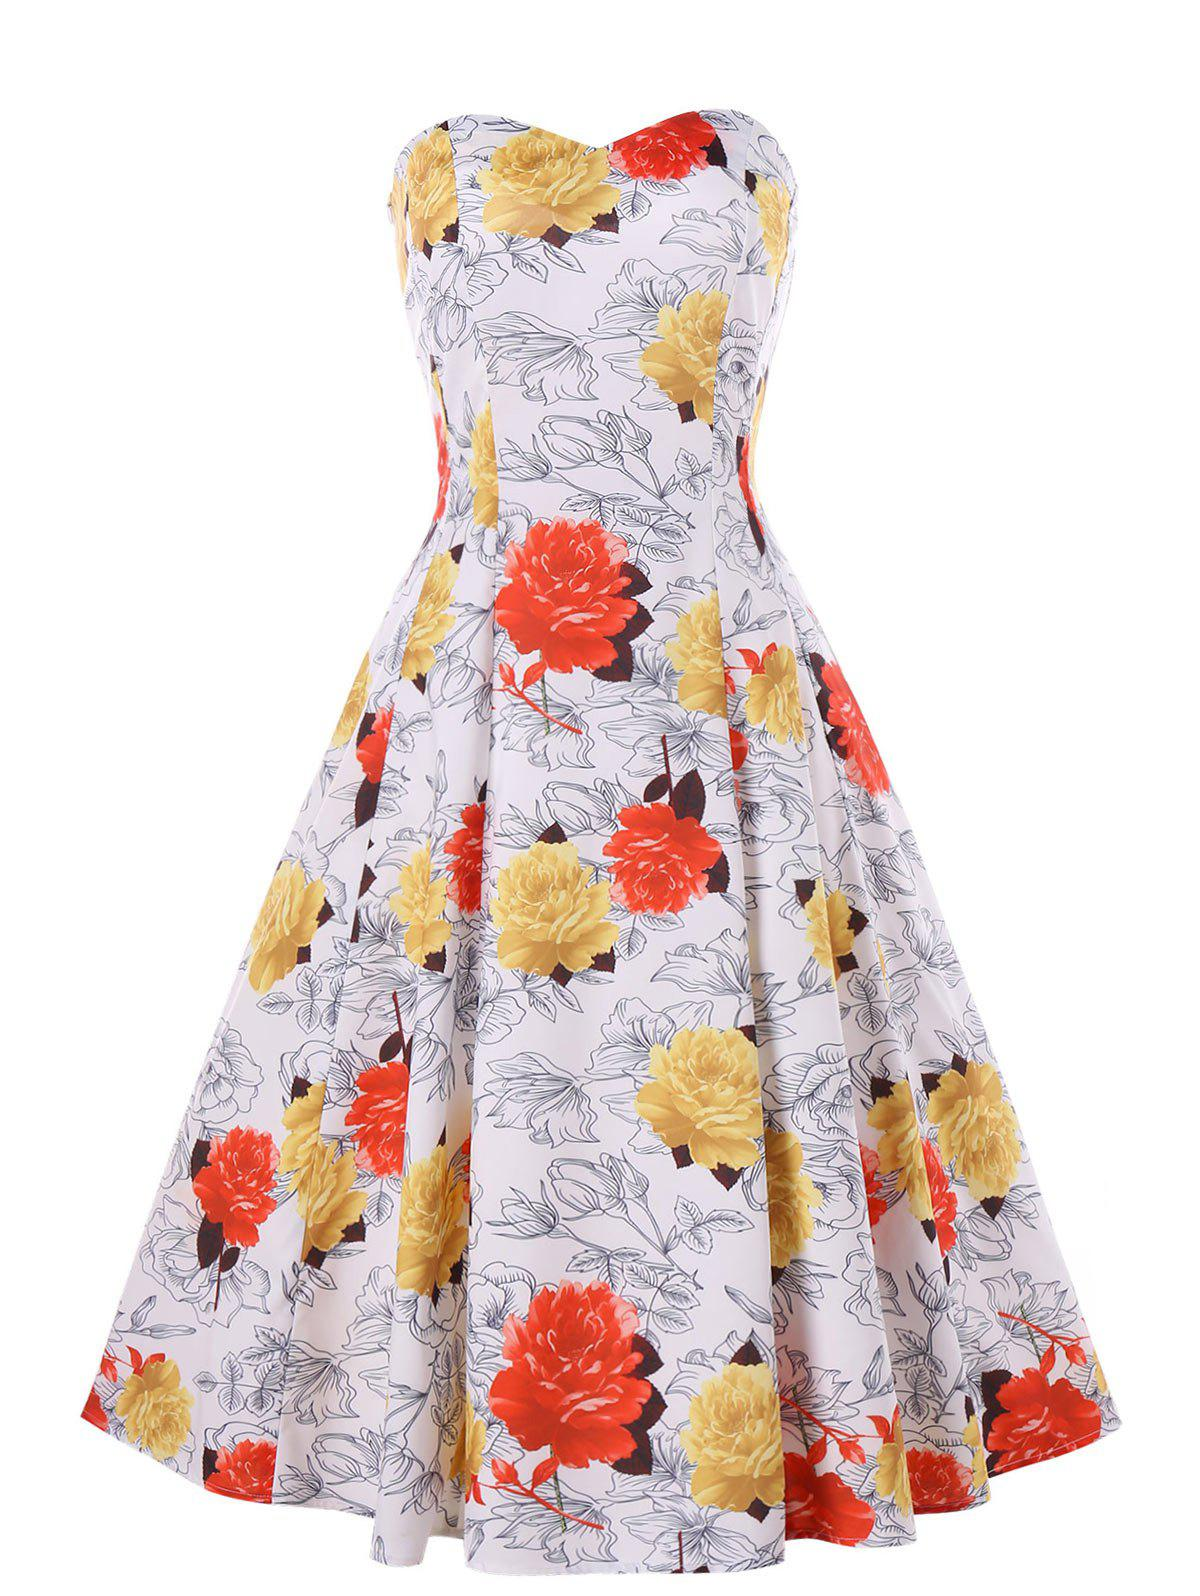 Shops Floral Print Cocktail Strapless Dress